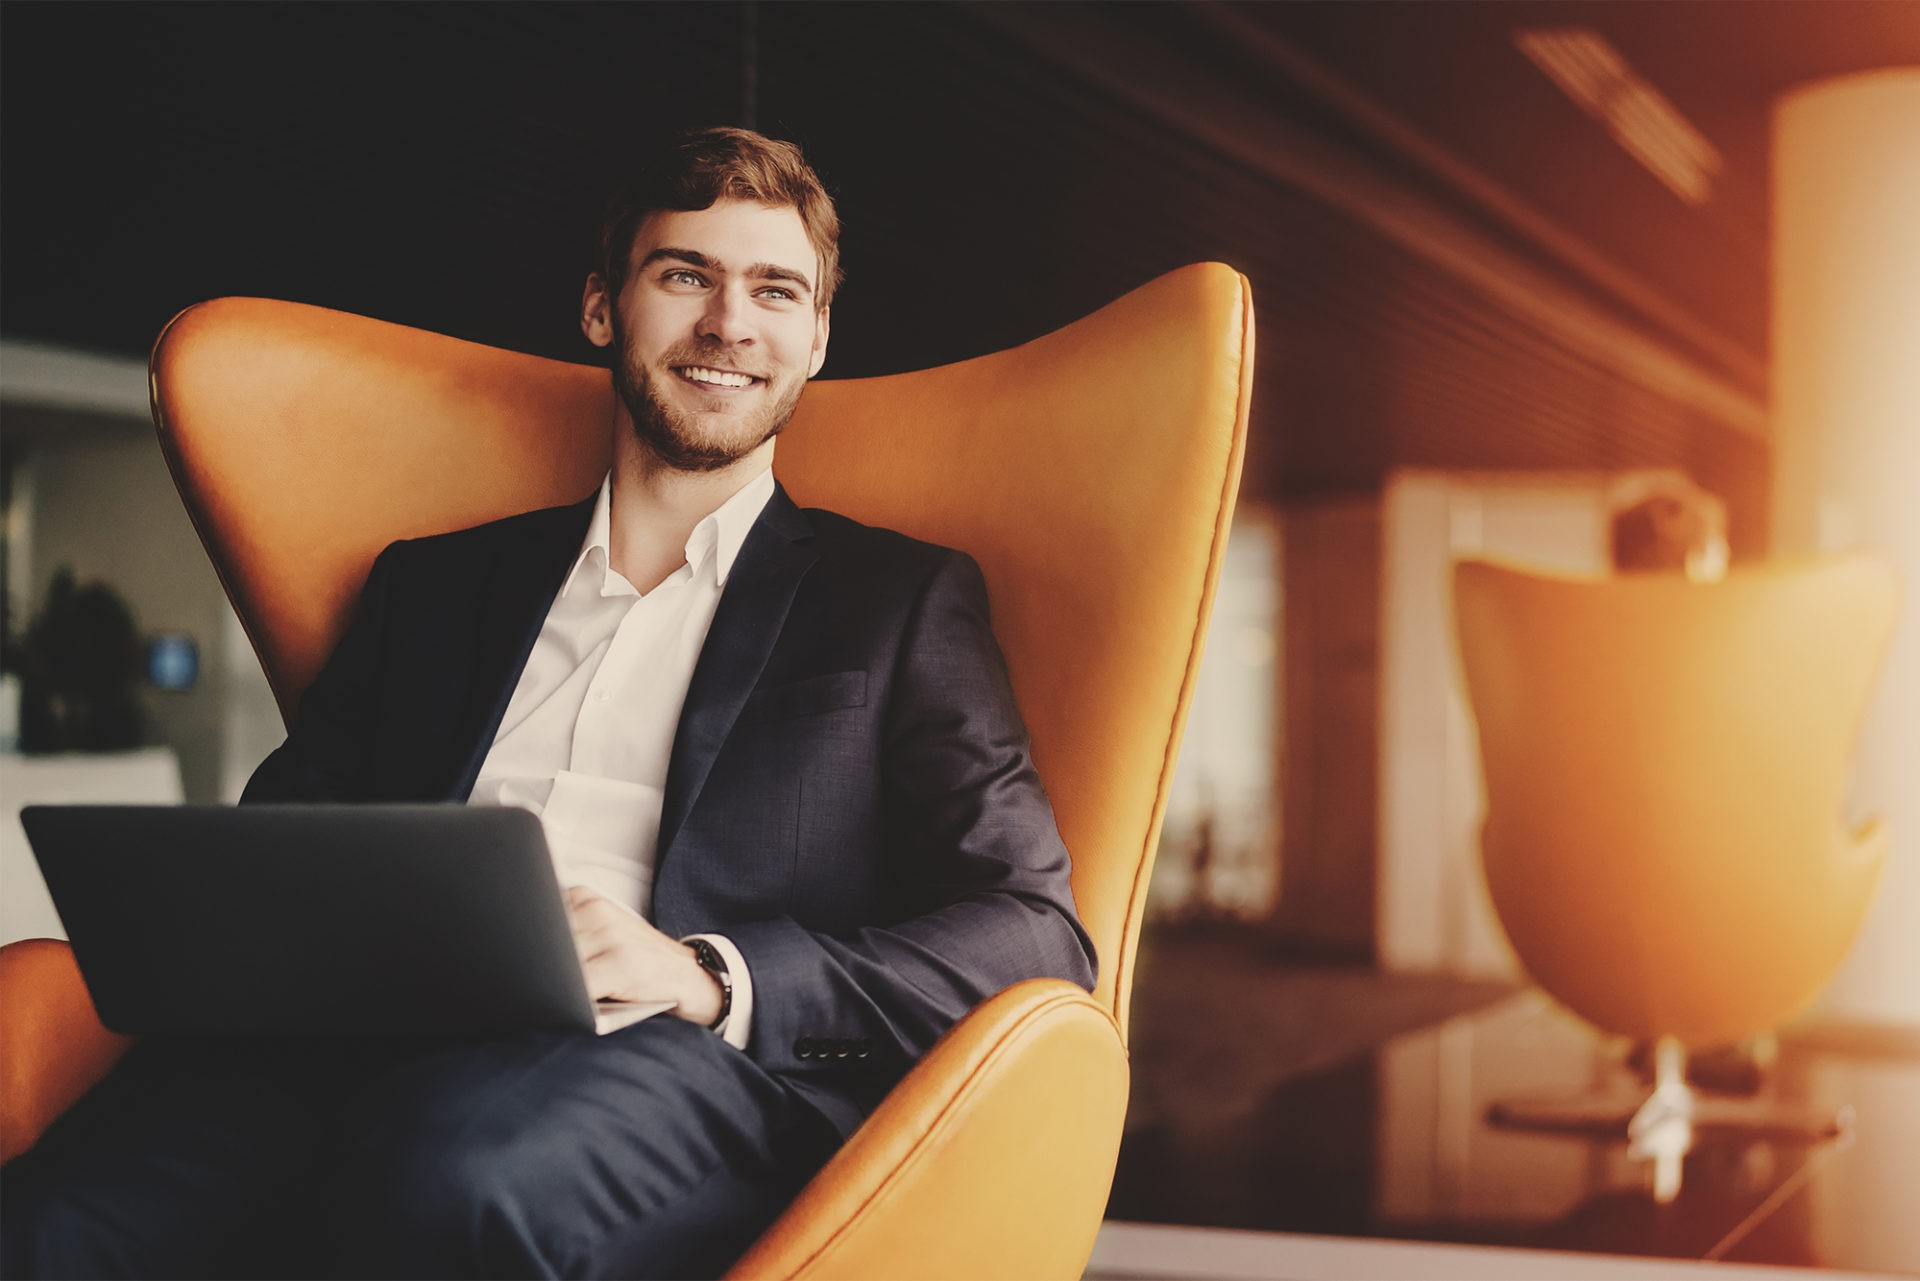 smiling young male professional sitting in chair with laptop